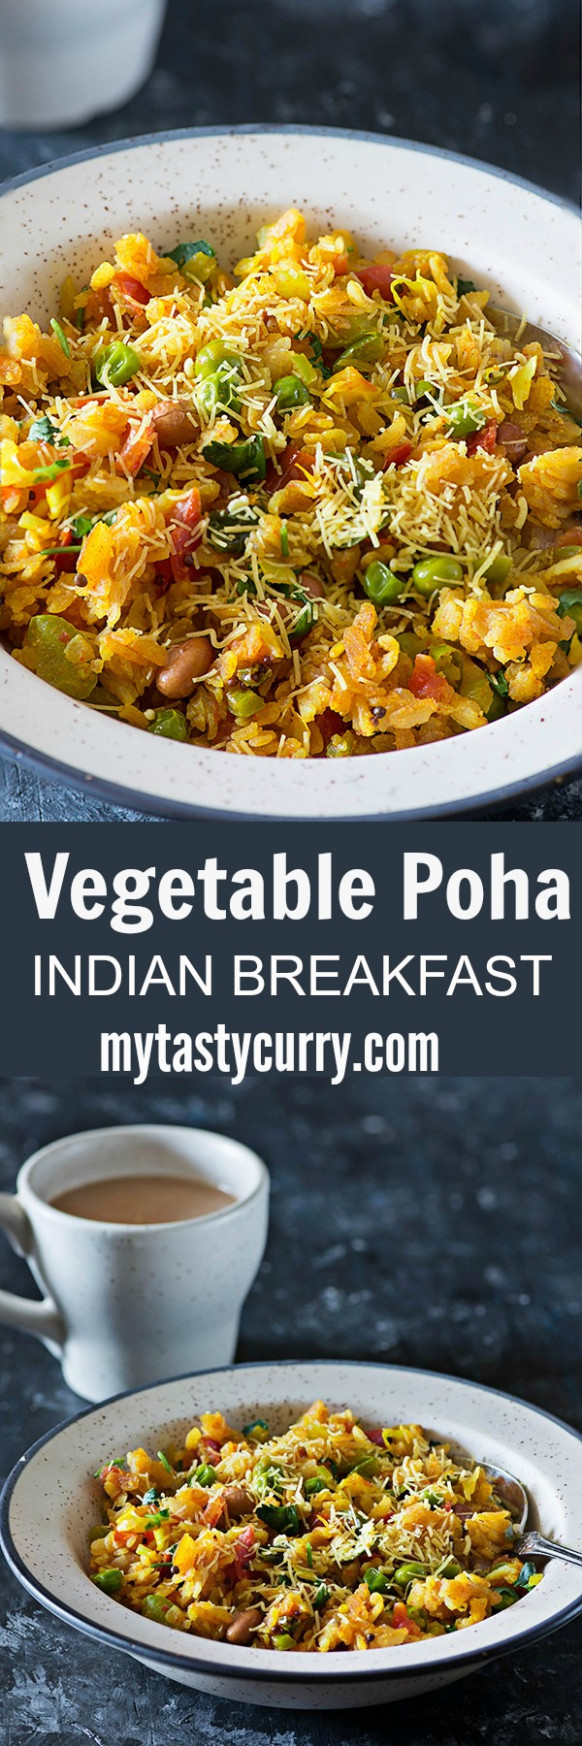 indian breakfast Archives - My Tasty Curry - healthy indian recipes